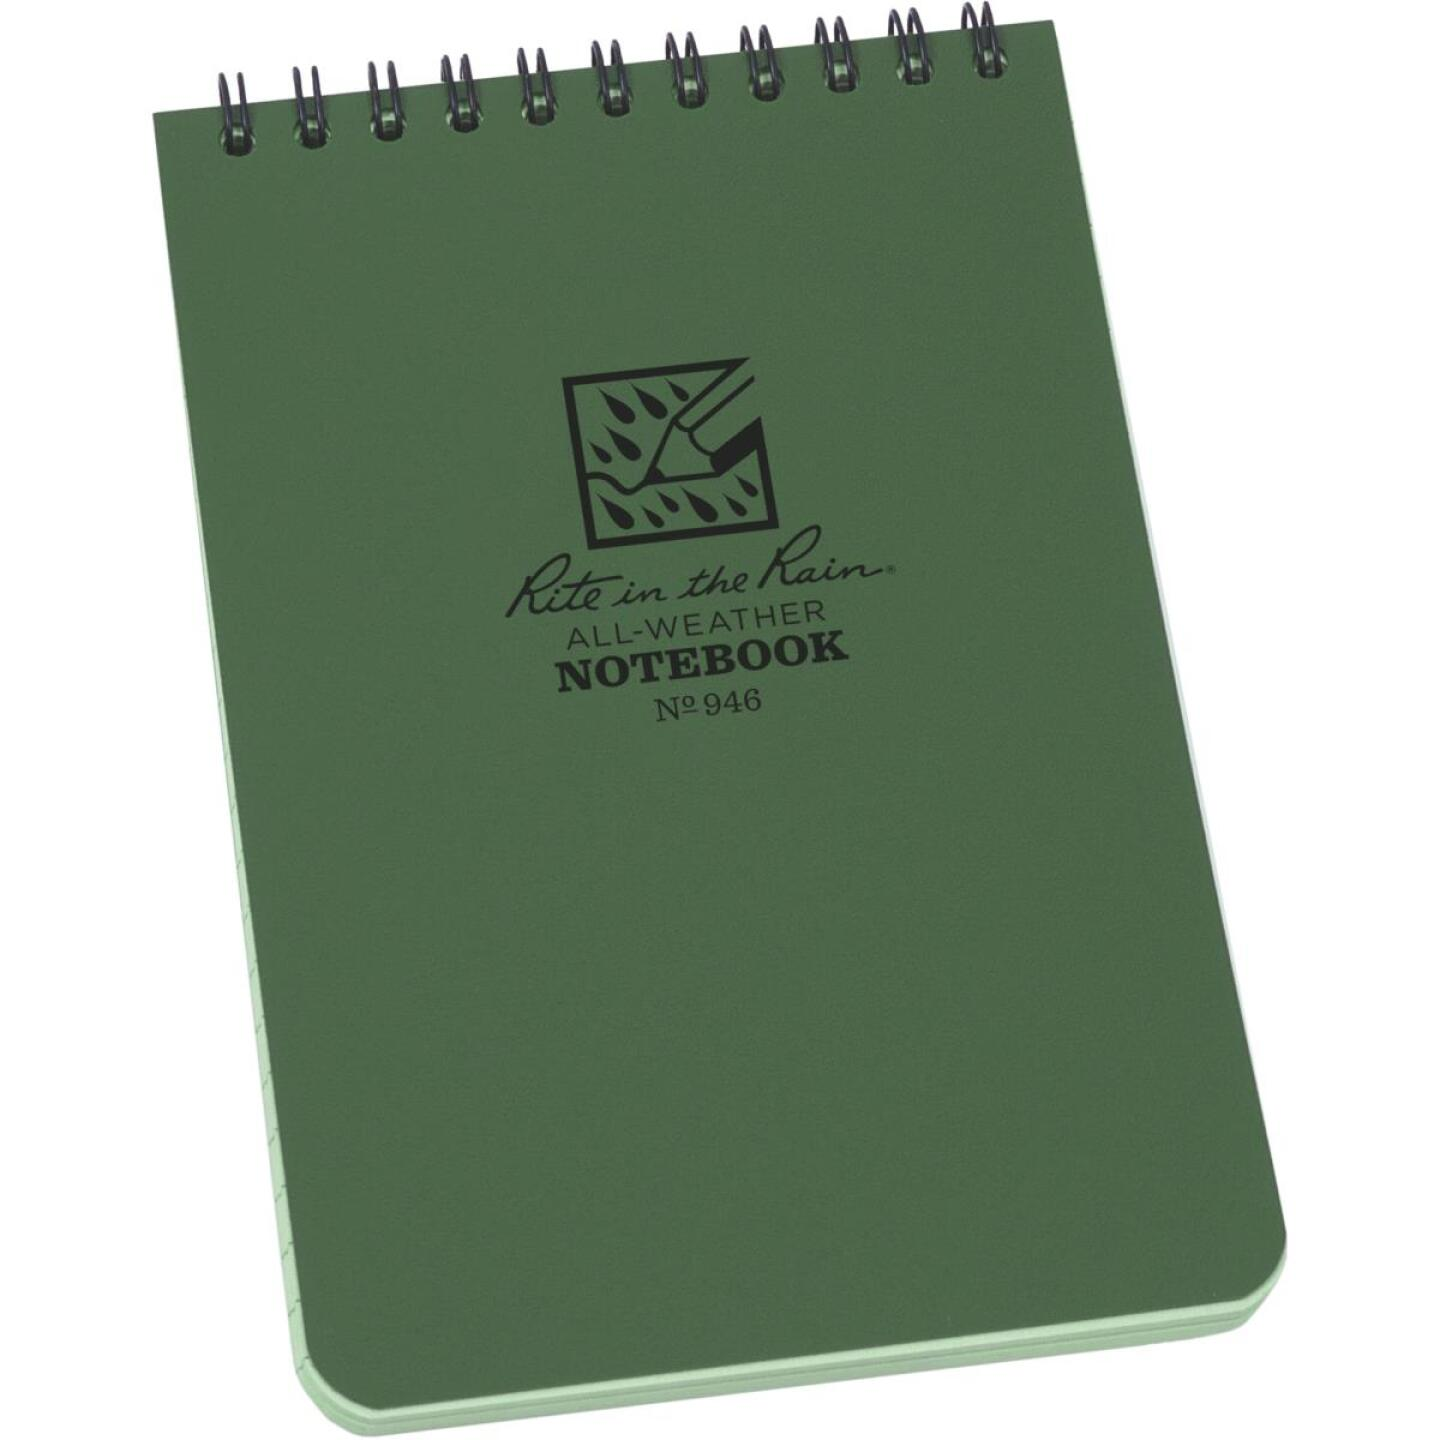 Rite in the Rain All-Weather 4 In. W x 6 In. H 50-Sheet Top-Spiral Bound Notebook, Green Image 1